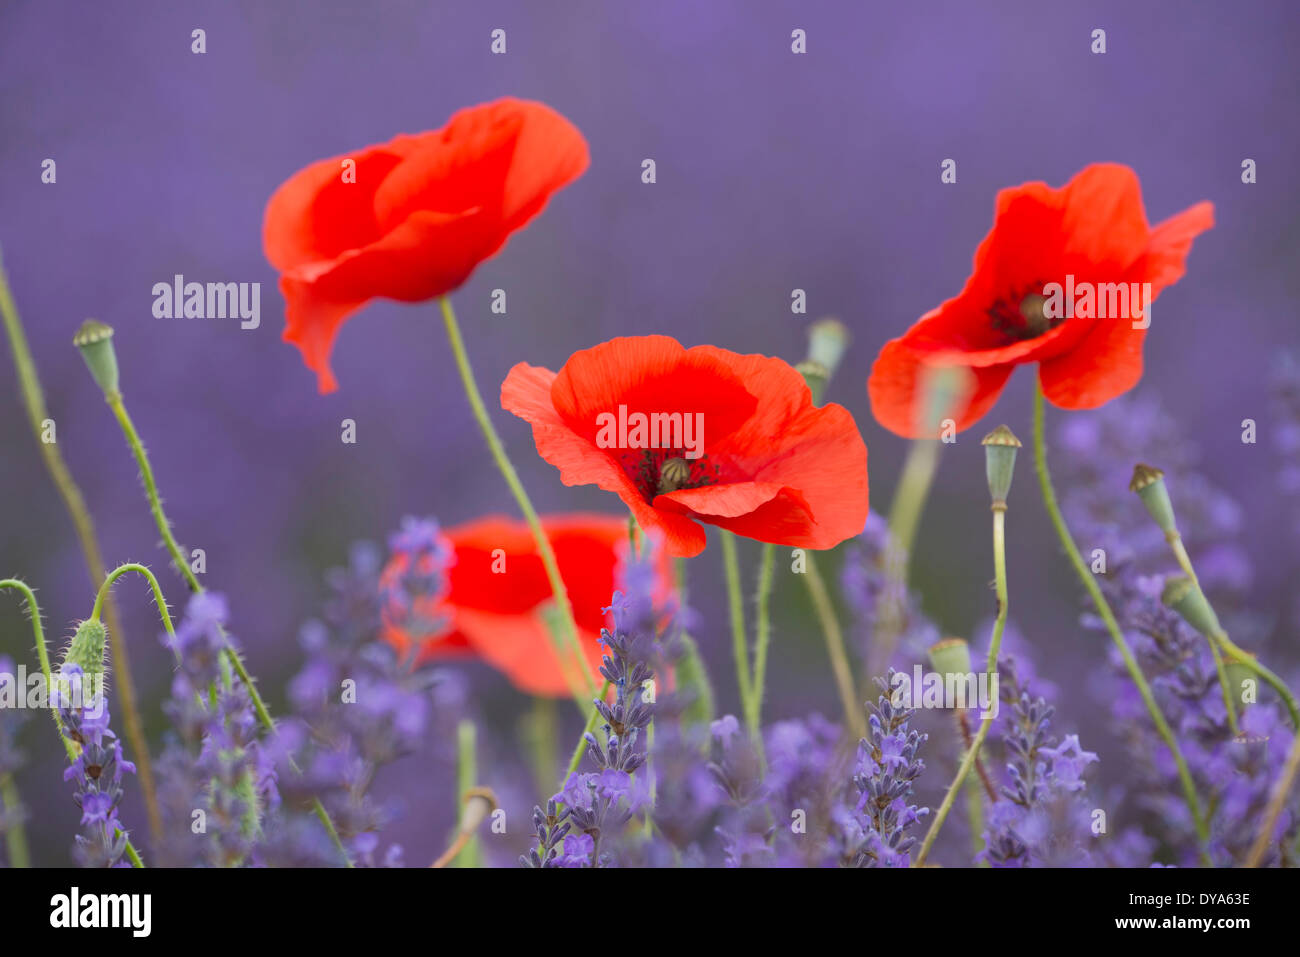 Europe, France, Provence, Vaucluse, poppy, poppies, bloom, flowers, lavender, nature, detail - Stock Image